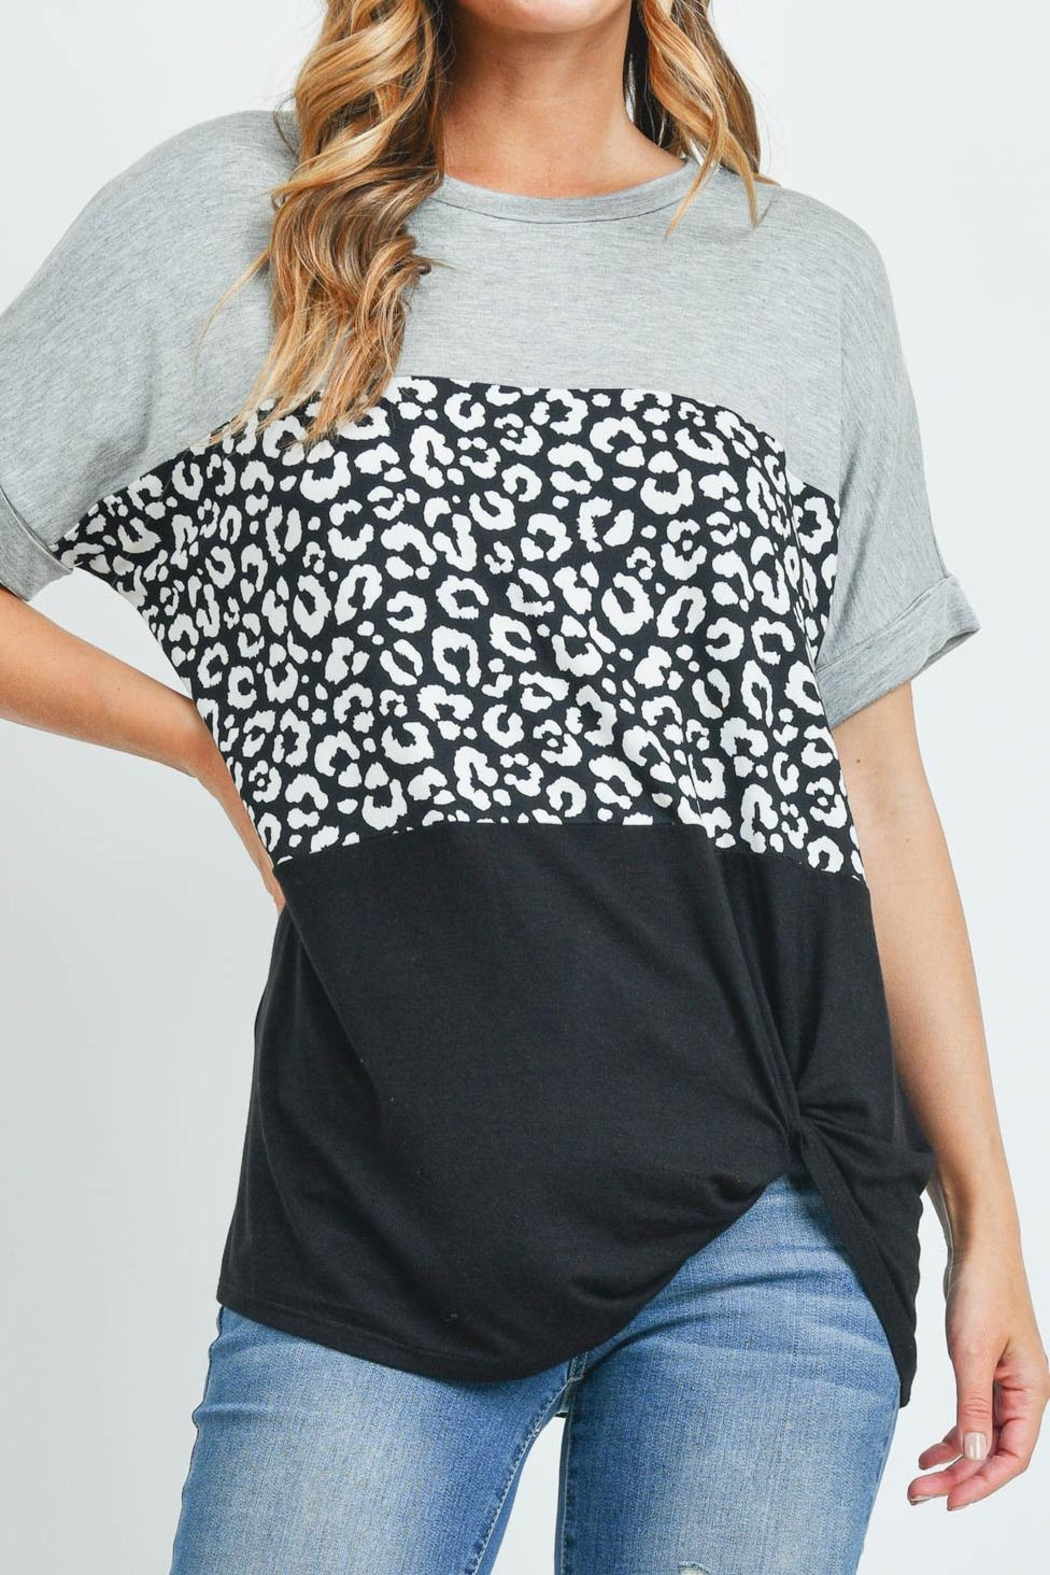 Riah Fashion Rolled-Sleeve-Leopard-Contrast-Top - Main Image